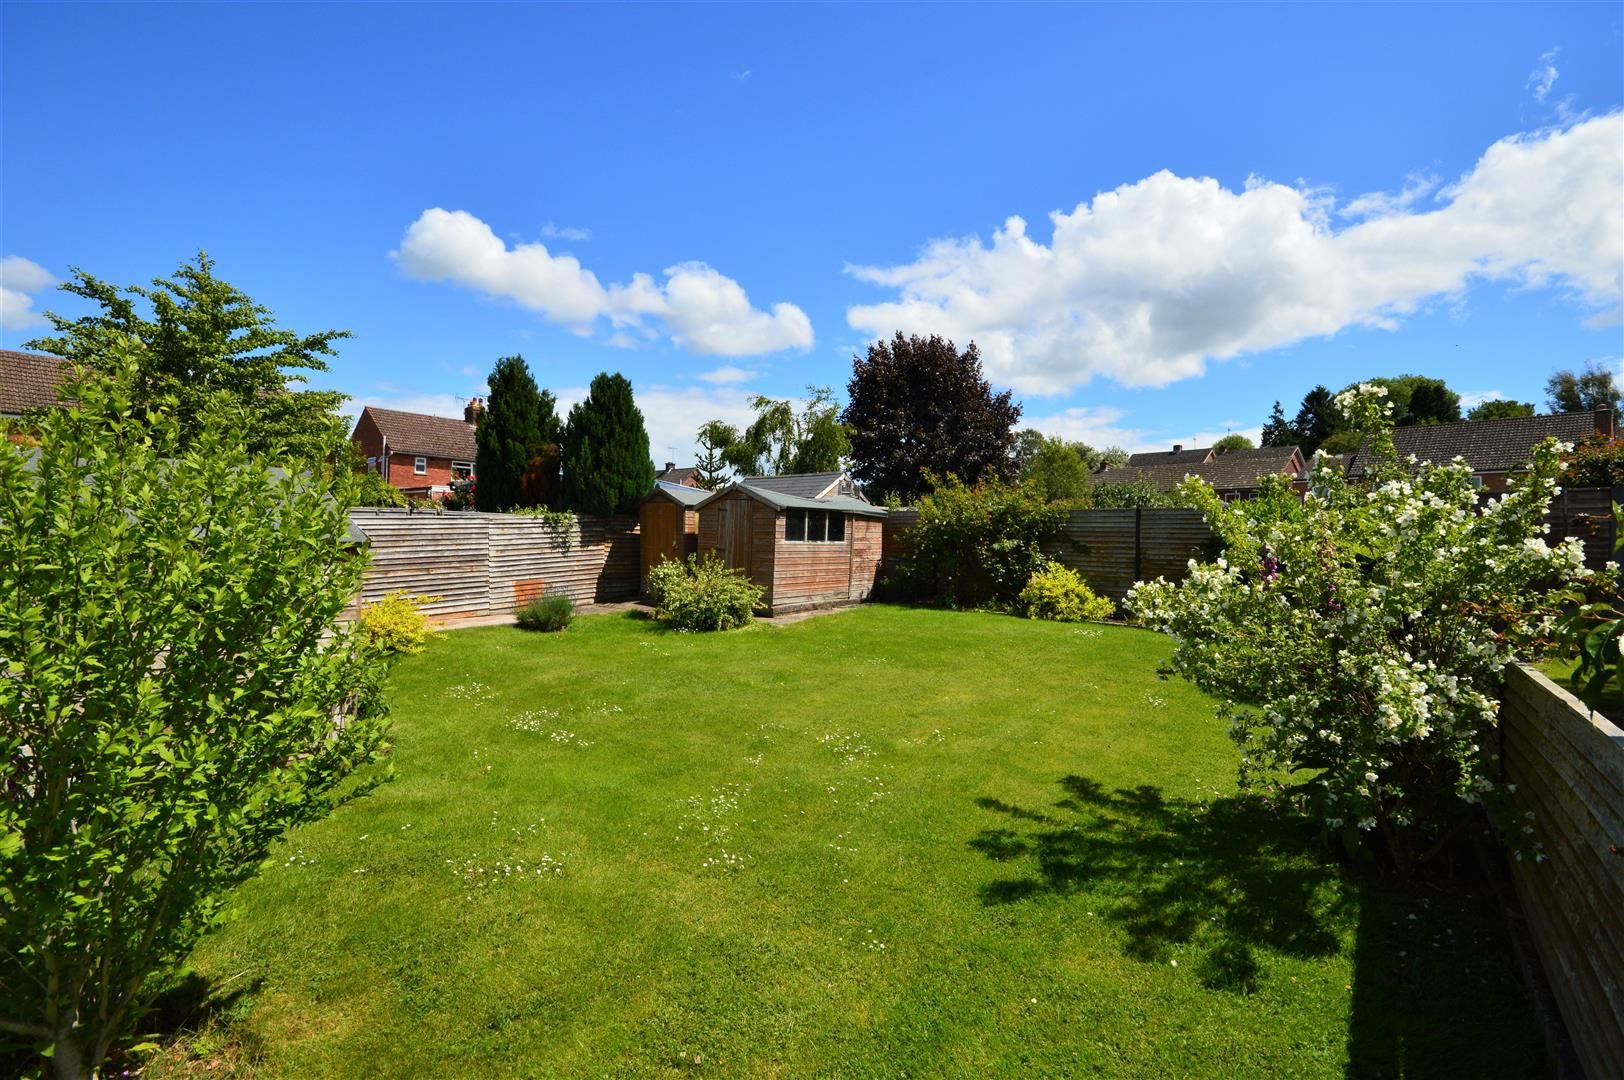 2 bed semi-detached-bungalow for sale in Leominster 10